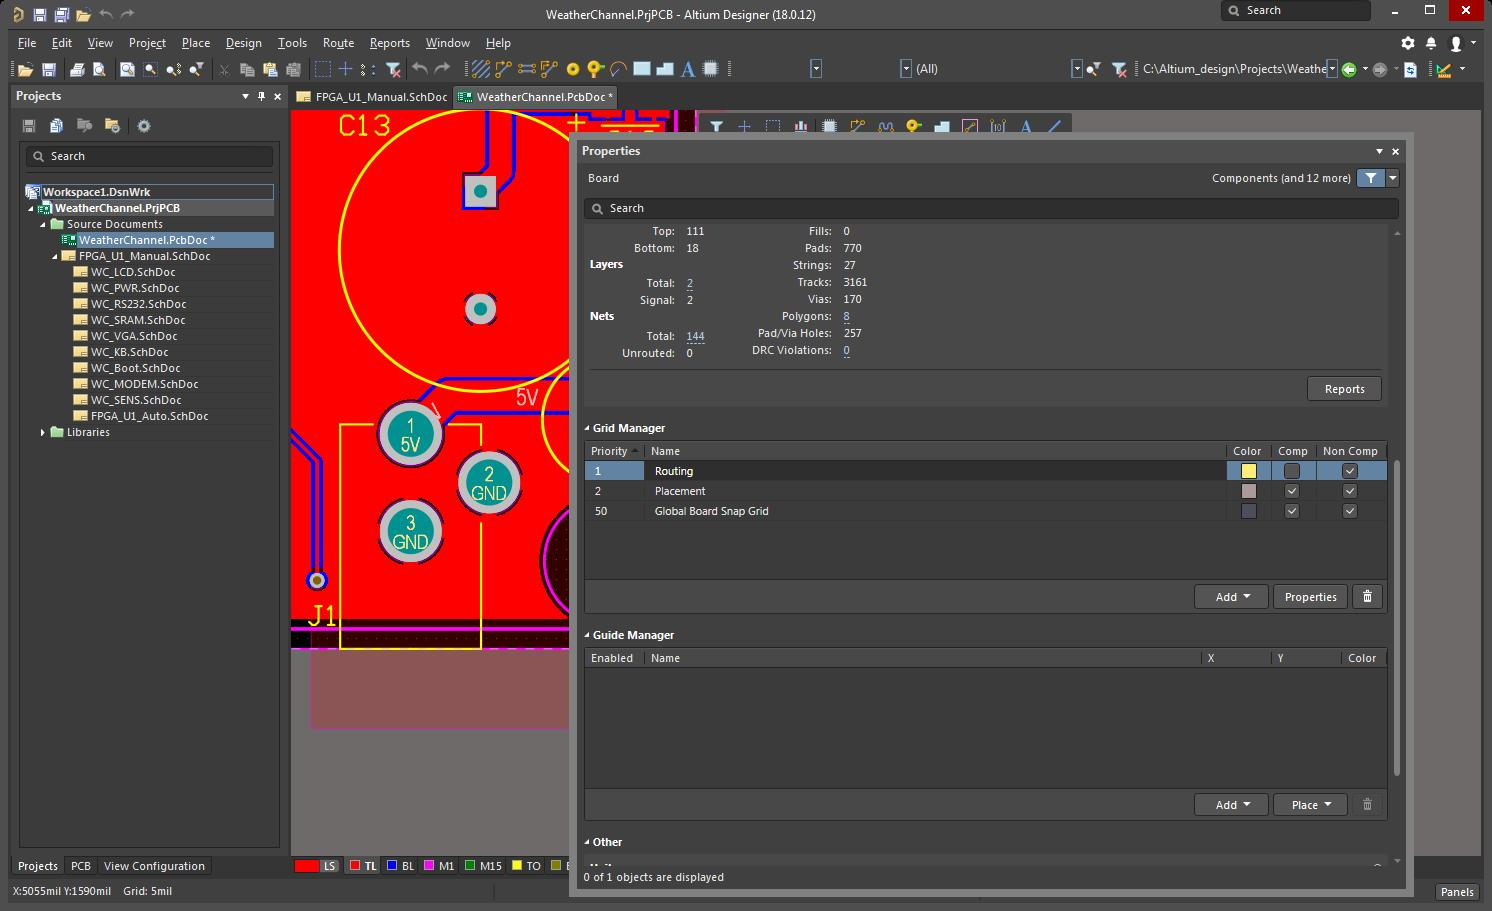 Altium Designer session with multiple grids shown in the grid manager